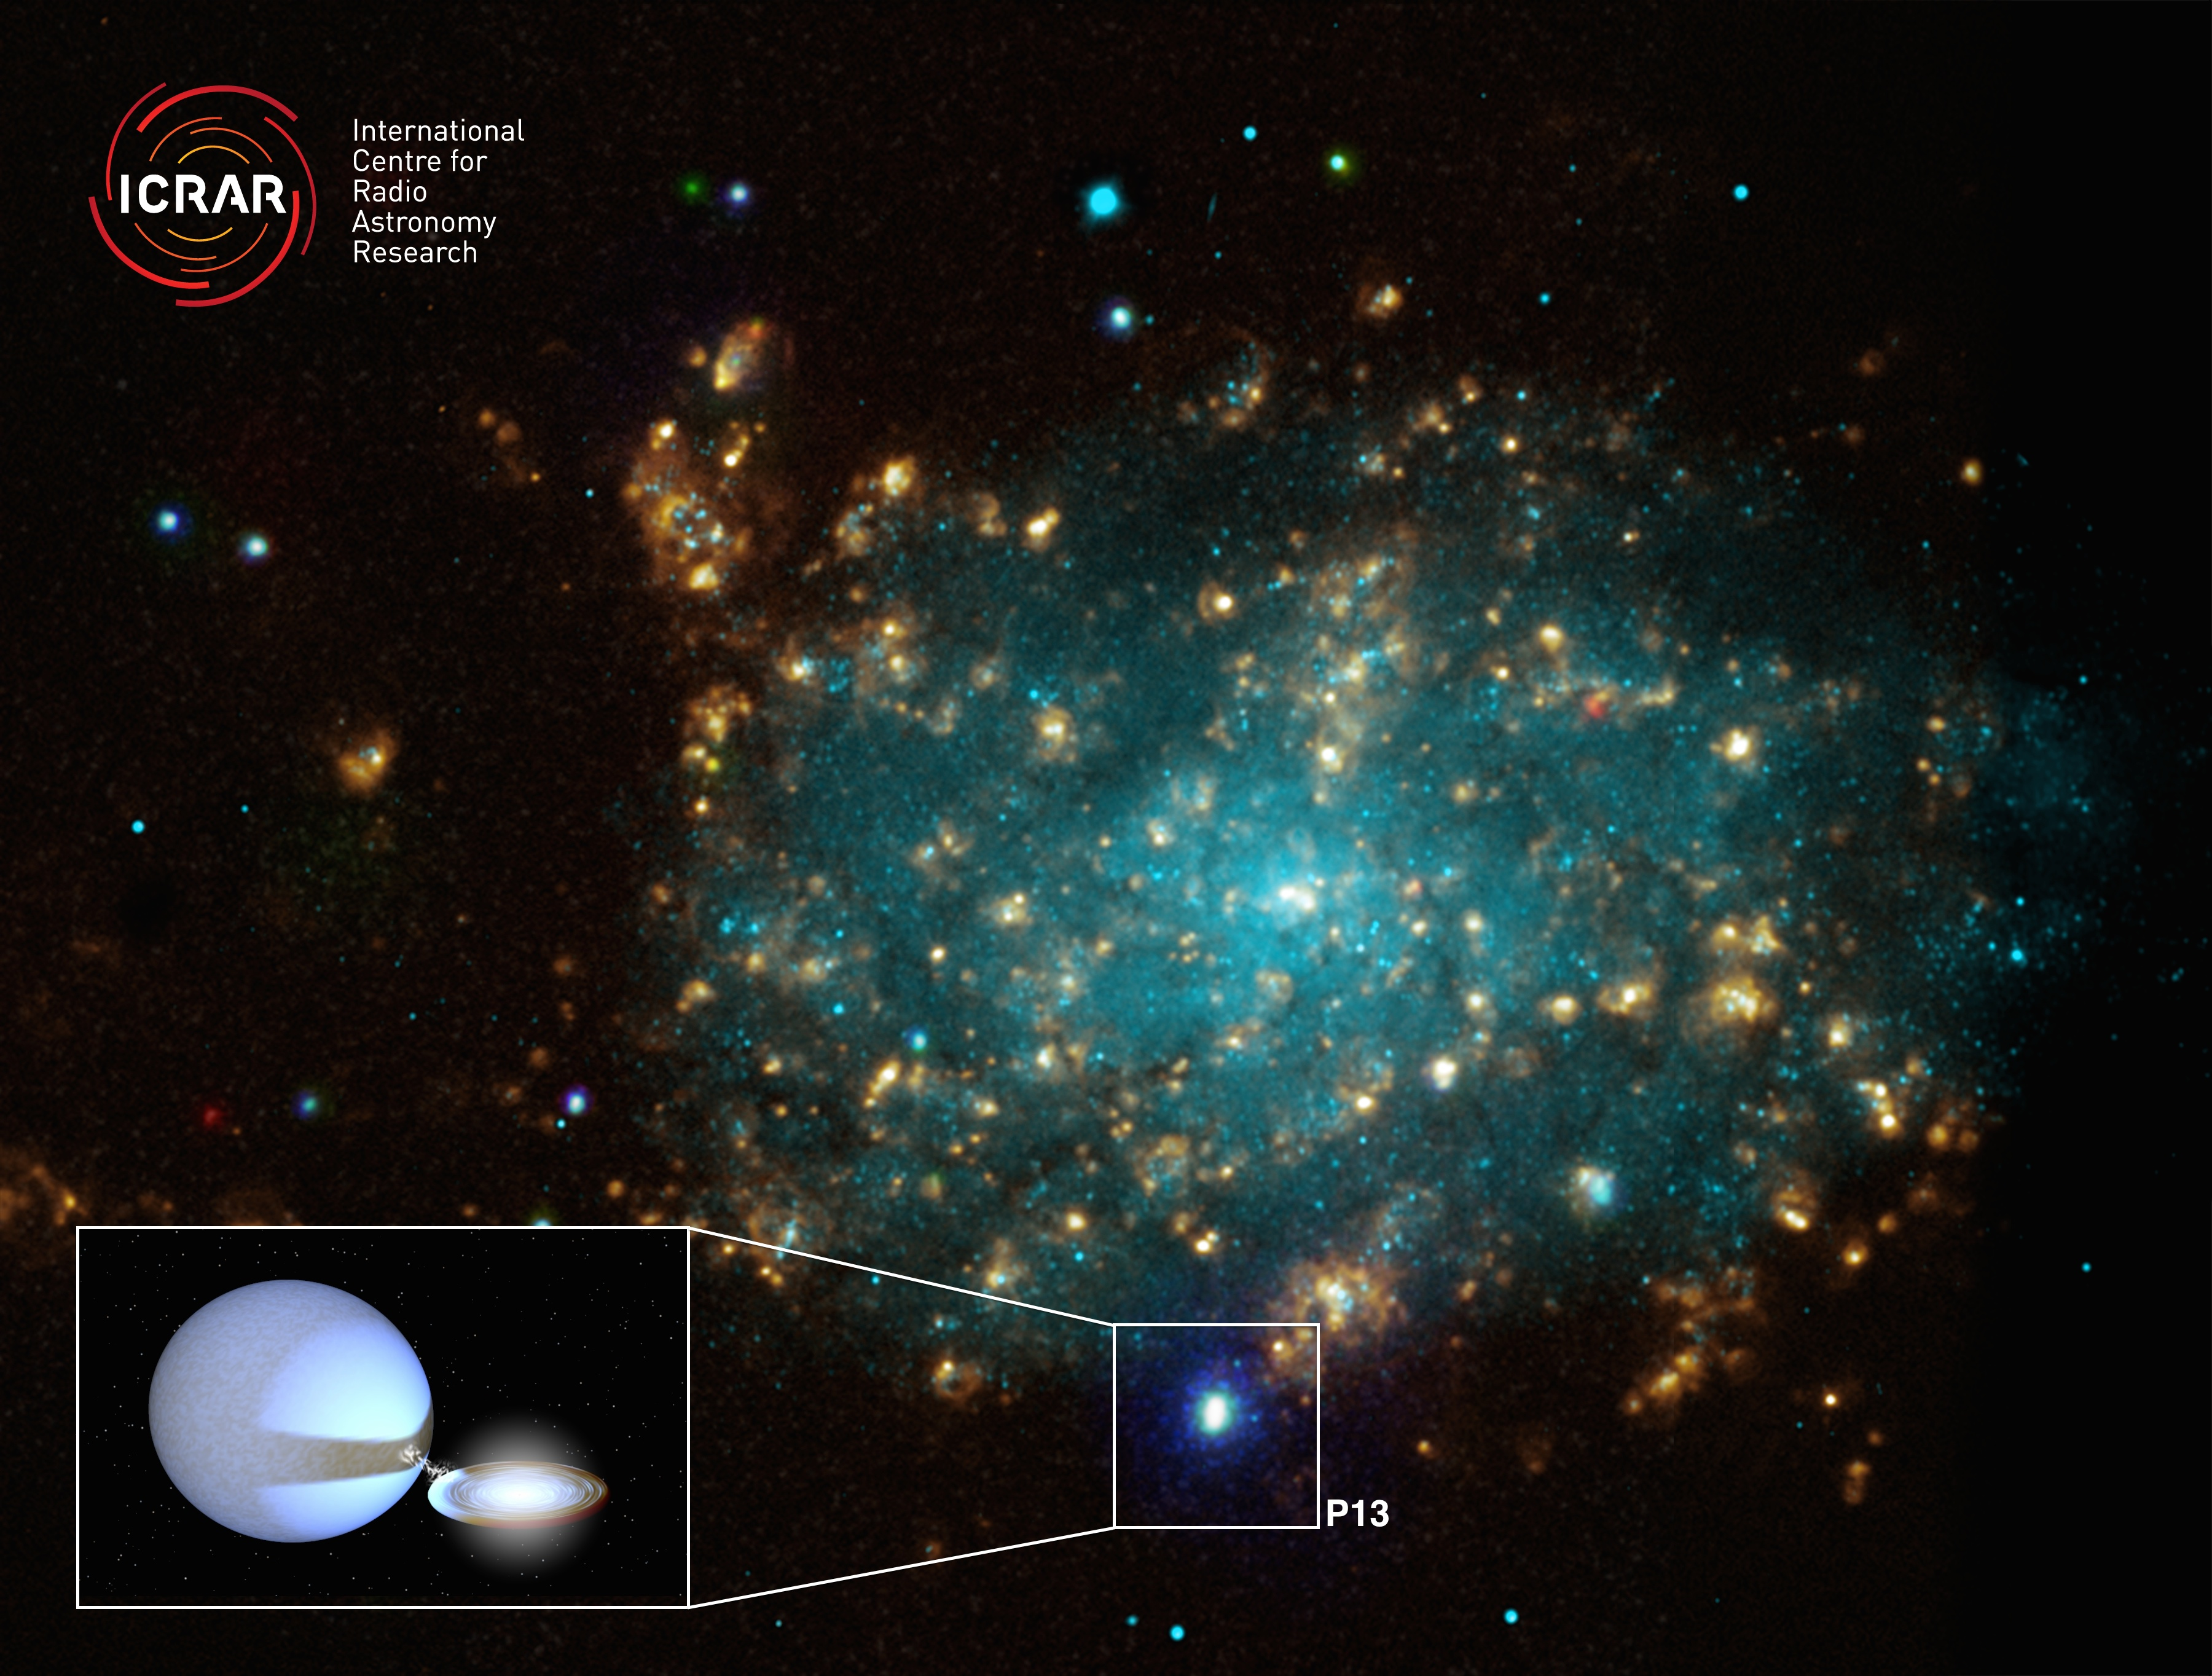 A galaxy about 12.7 million light years away containing a so-called microquasar.